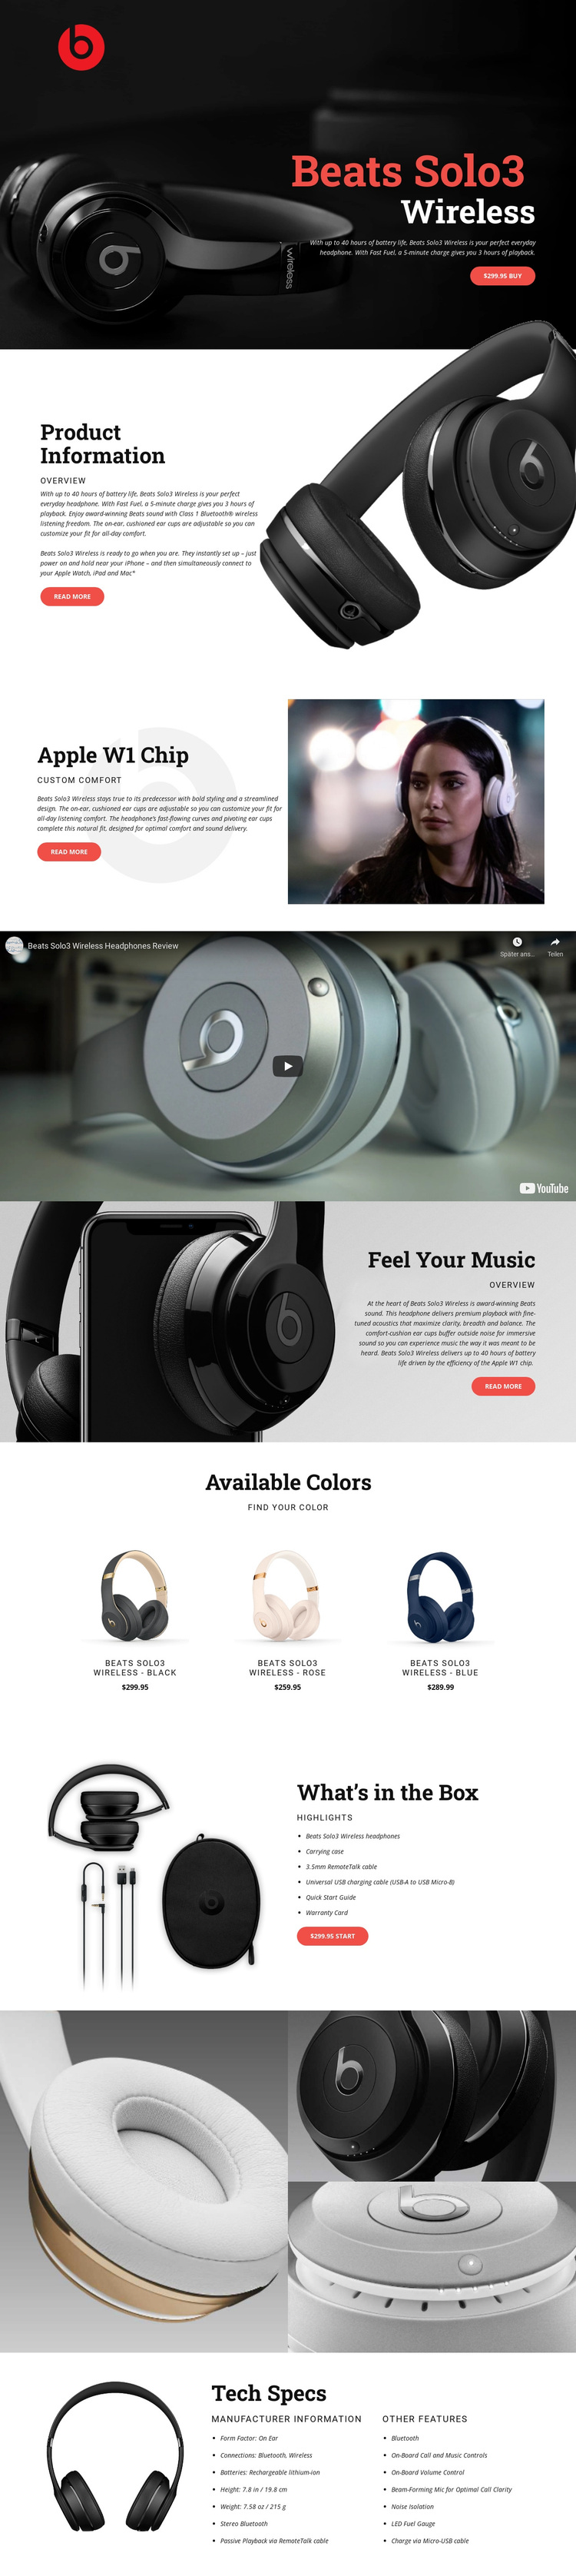 Outstanding quality of music Joomla Page Builder